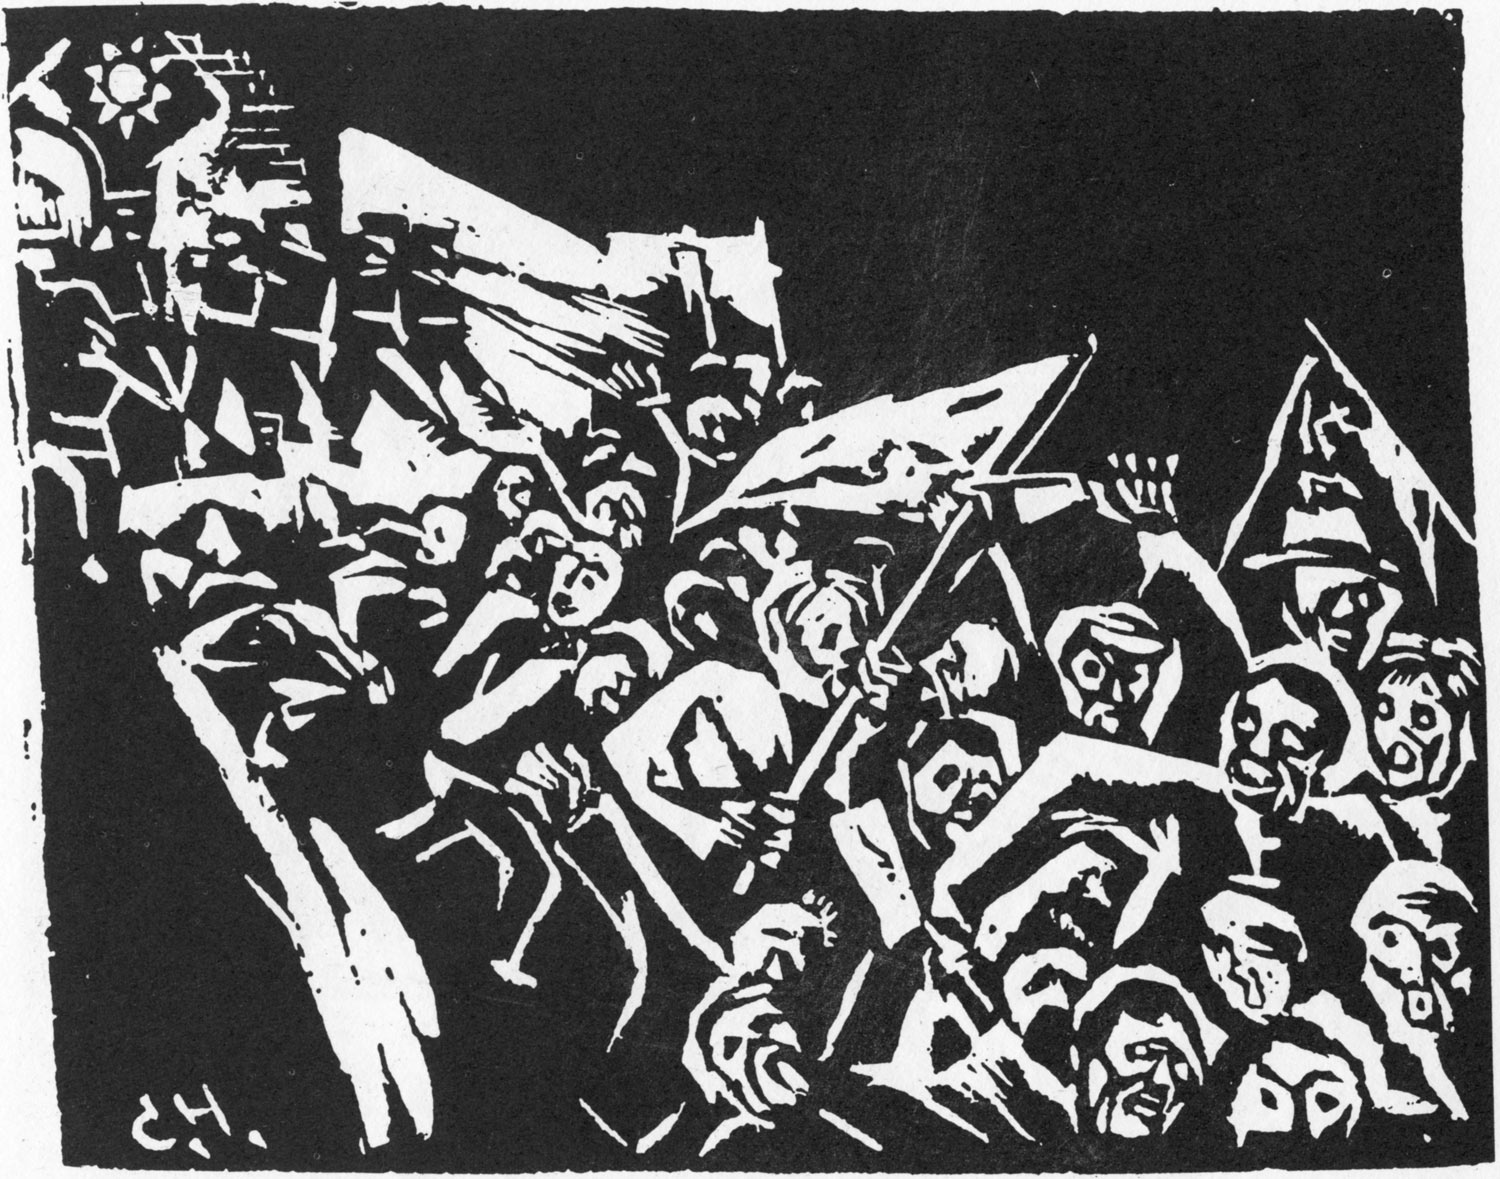 From new woodcut to the no name group resistance medium and message in 20th century china